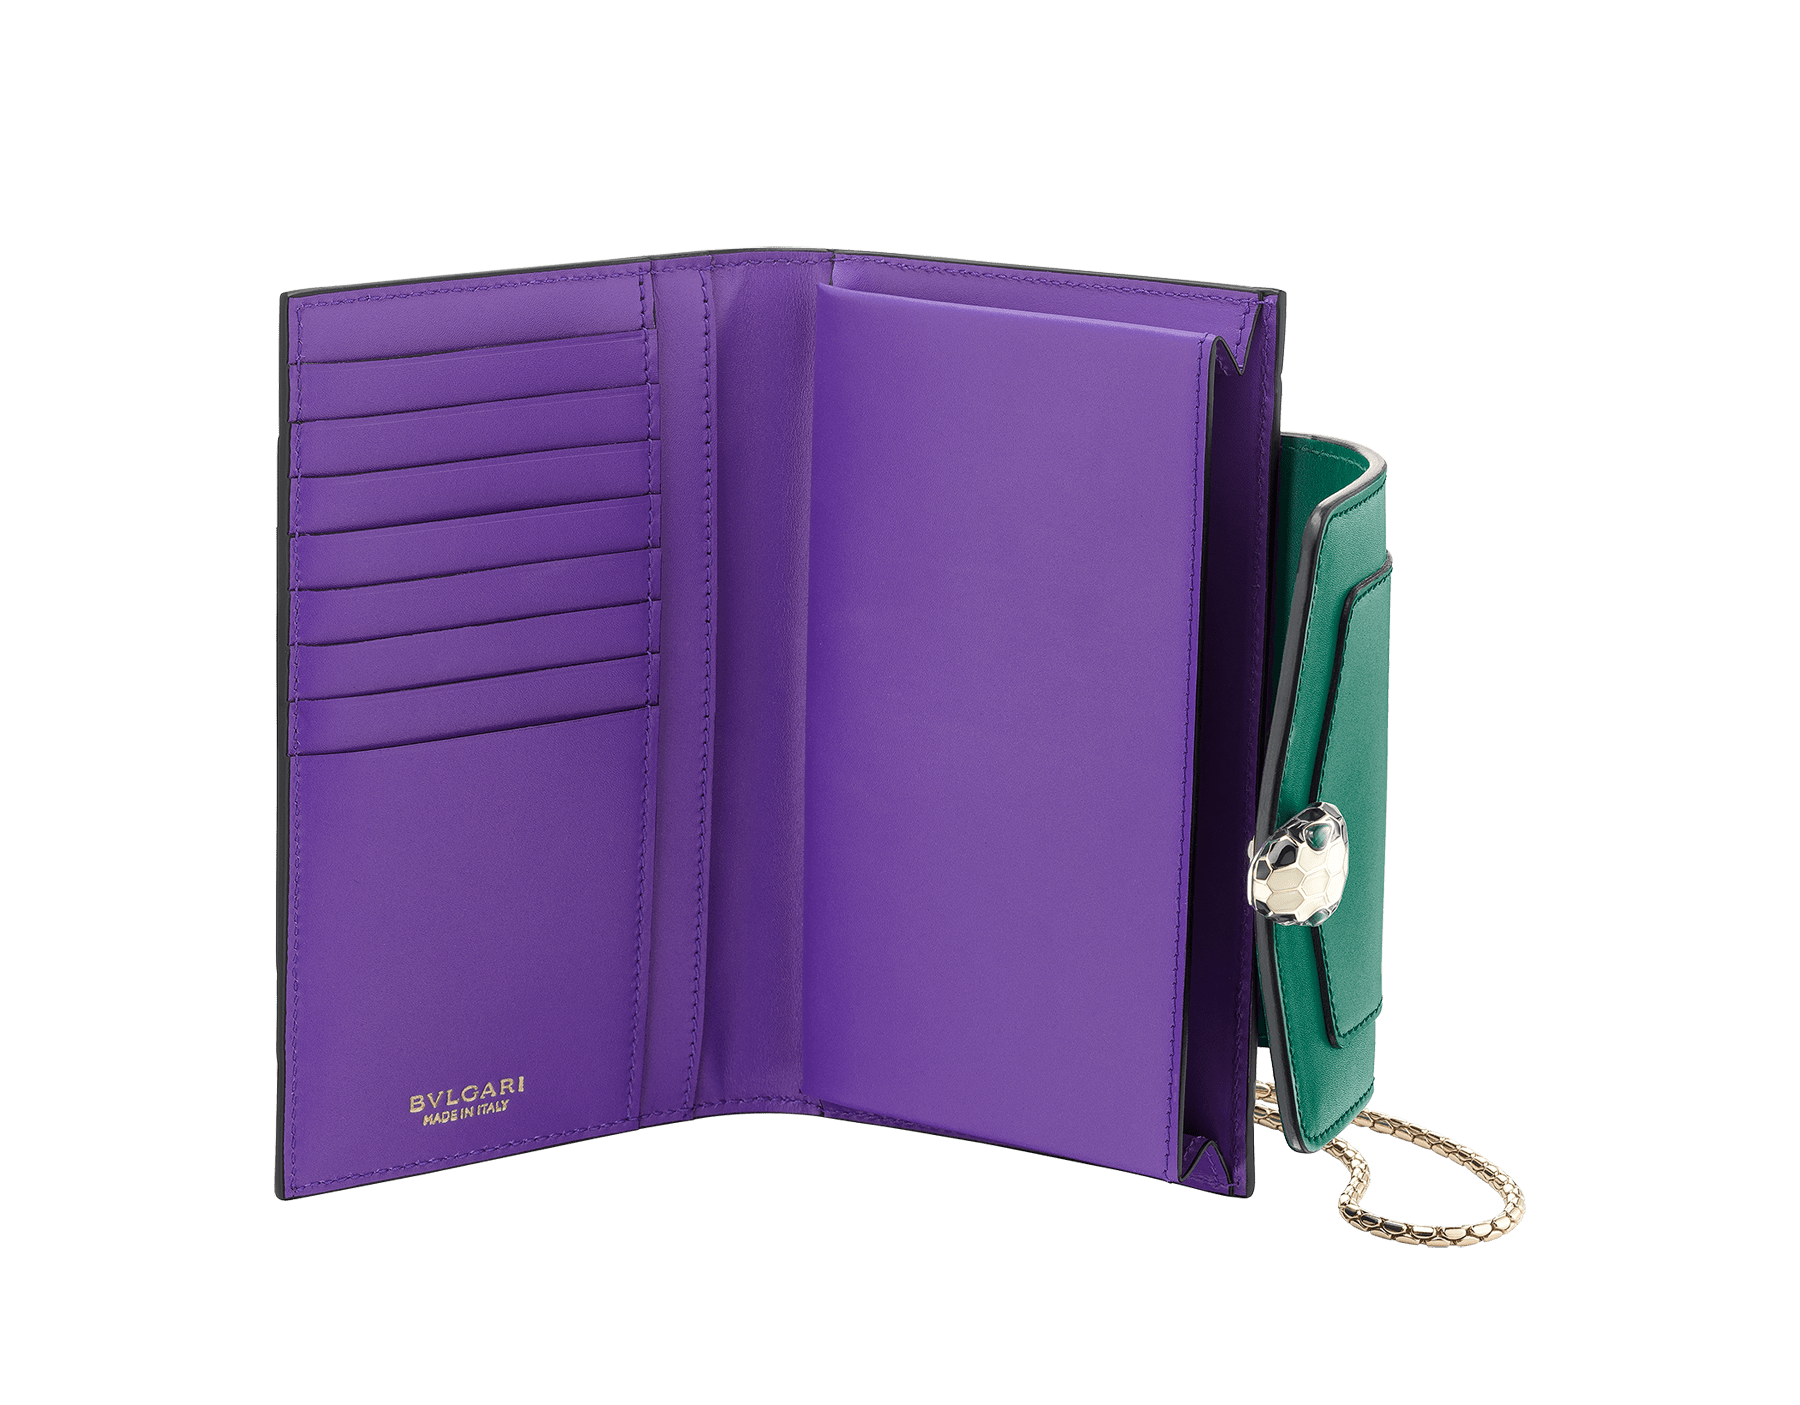 Techno-hybrid Serpenti Forever in flash amethyst calf leather, with black calf leather lining. Brass light gold plated Serpenti head stud closure in black and white enamel, with green enamel eyes. SEA-TECHNO-HYBRIDa image 2